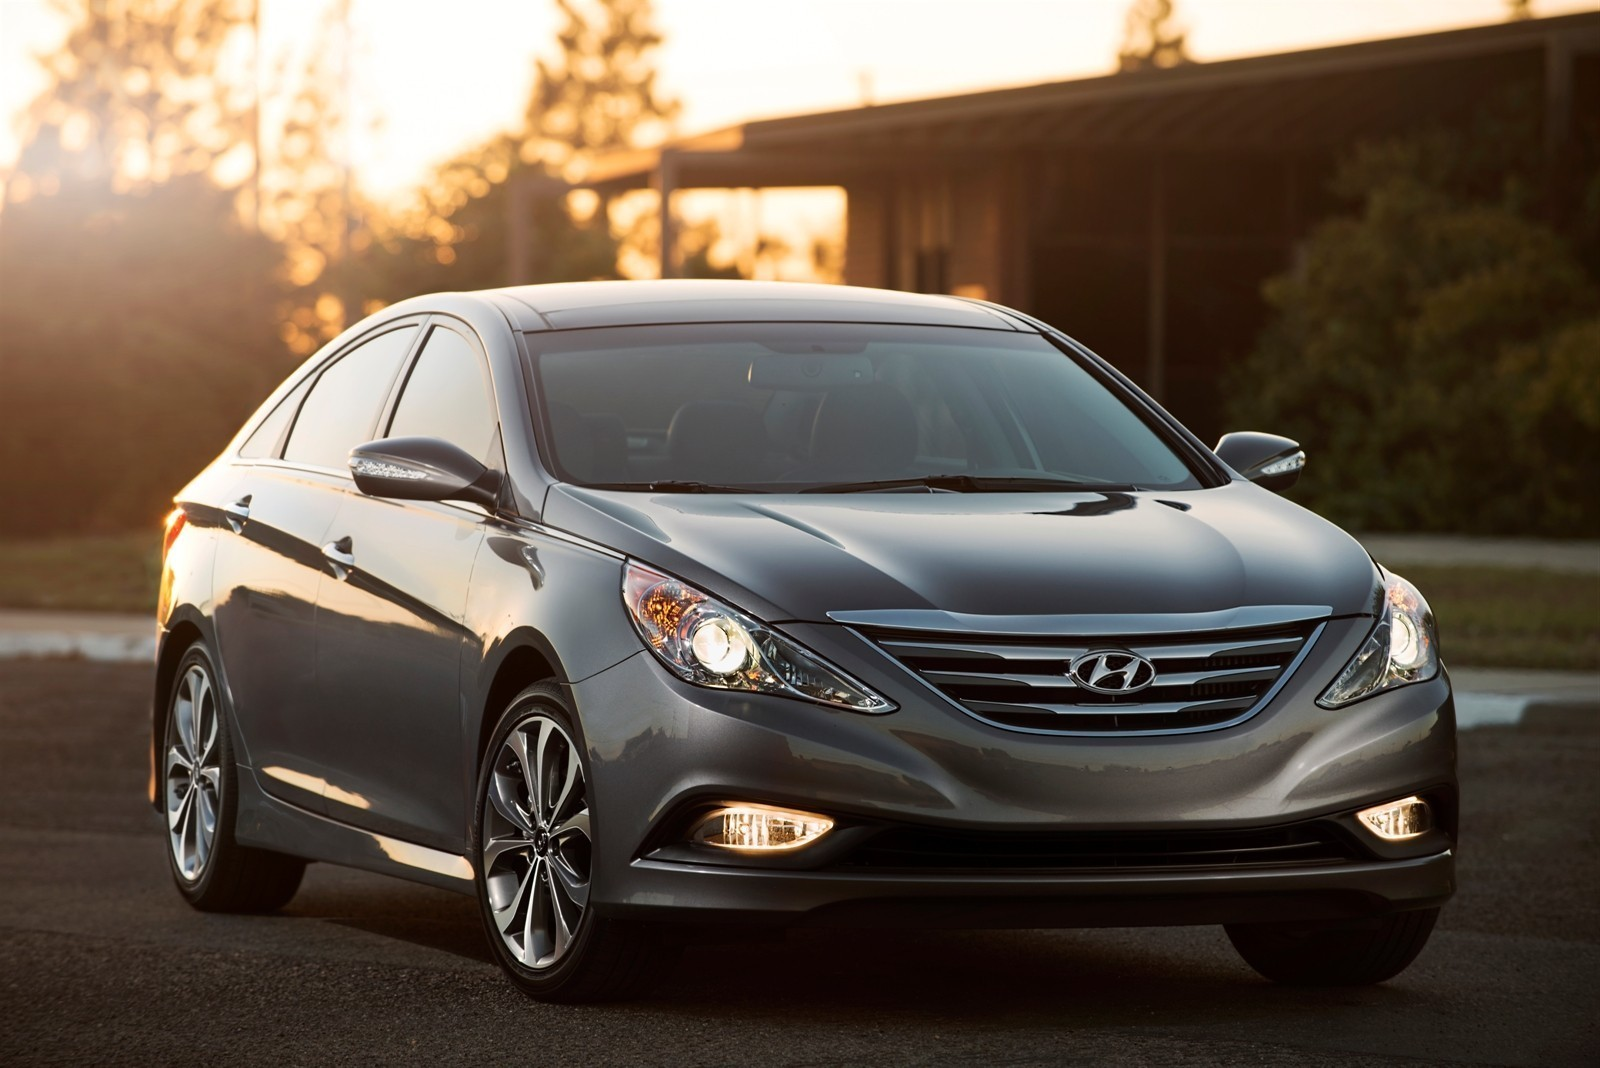 Hyundai recalls 2011 to 2014 Sonata for defective gear